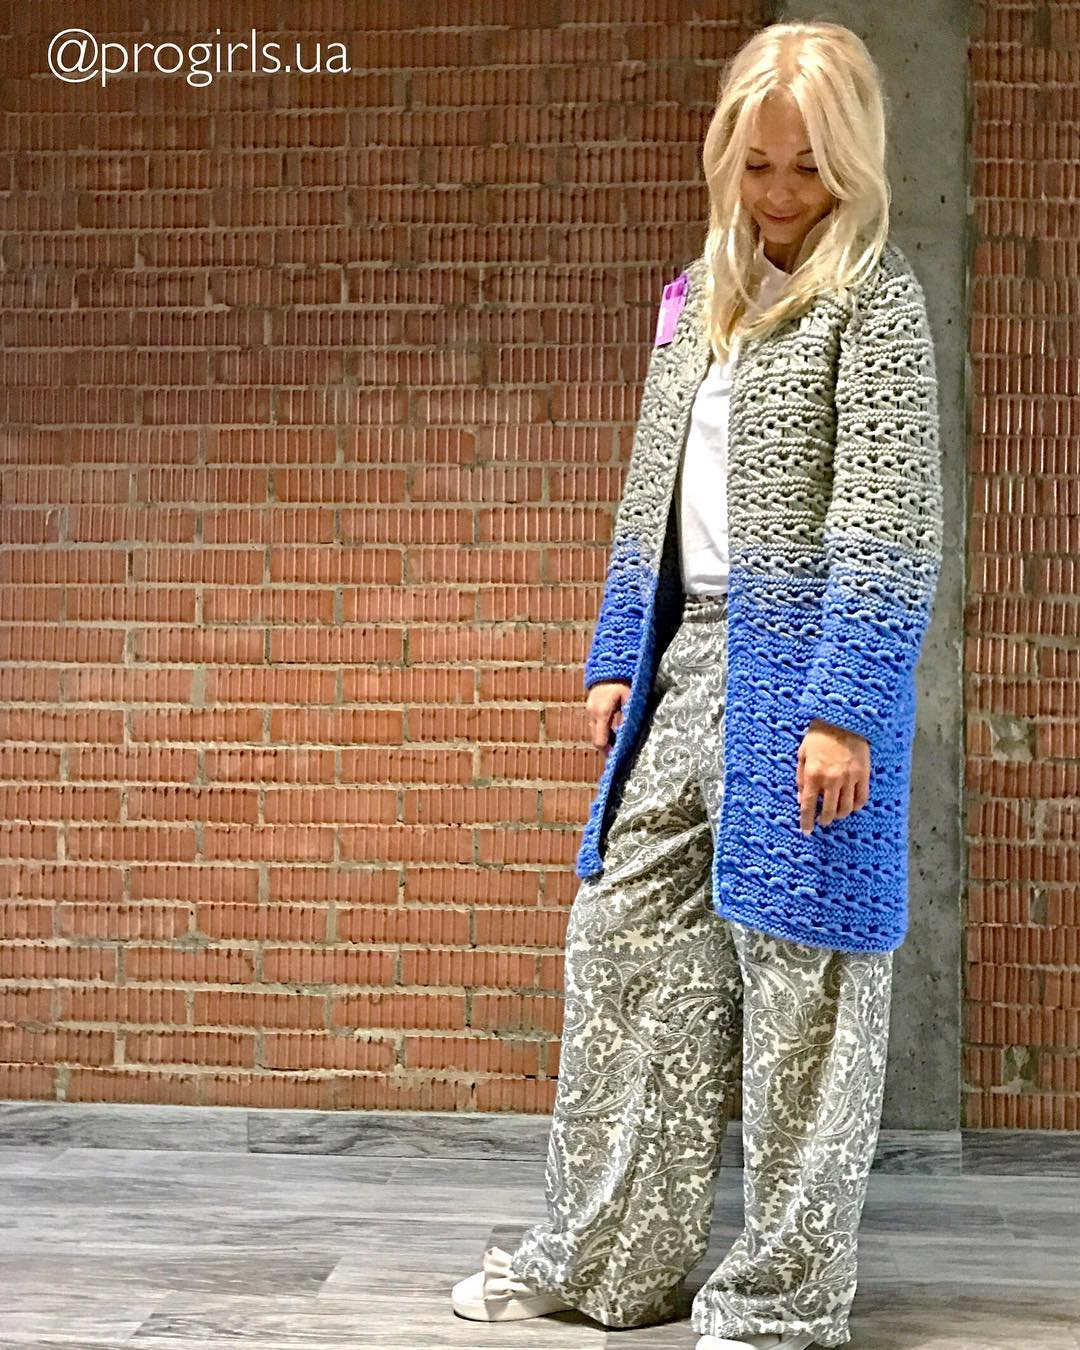 Versatile Double Tone Grey And Blue Cardigan With White Top And Grey Printed Bottom